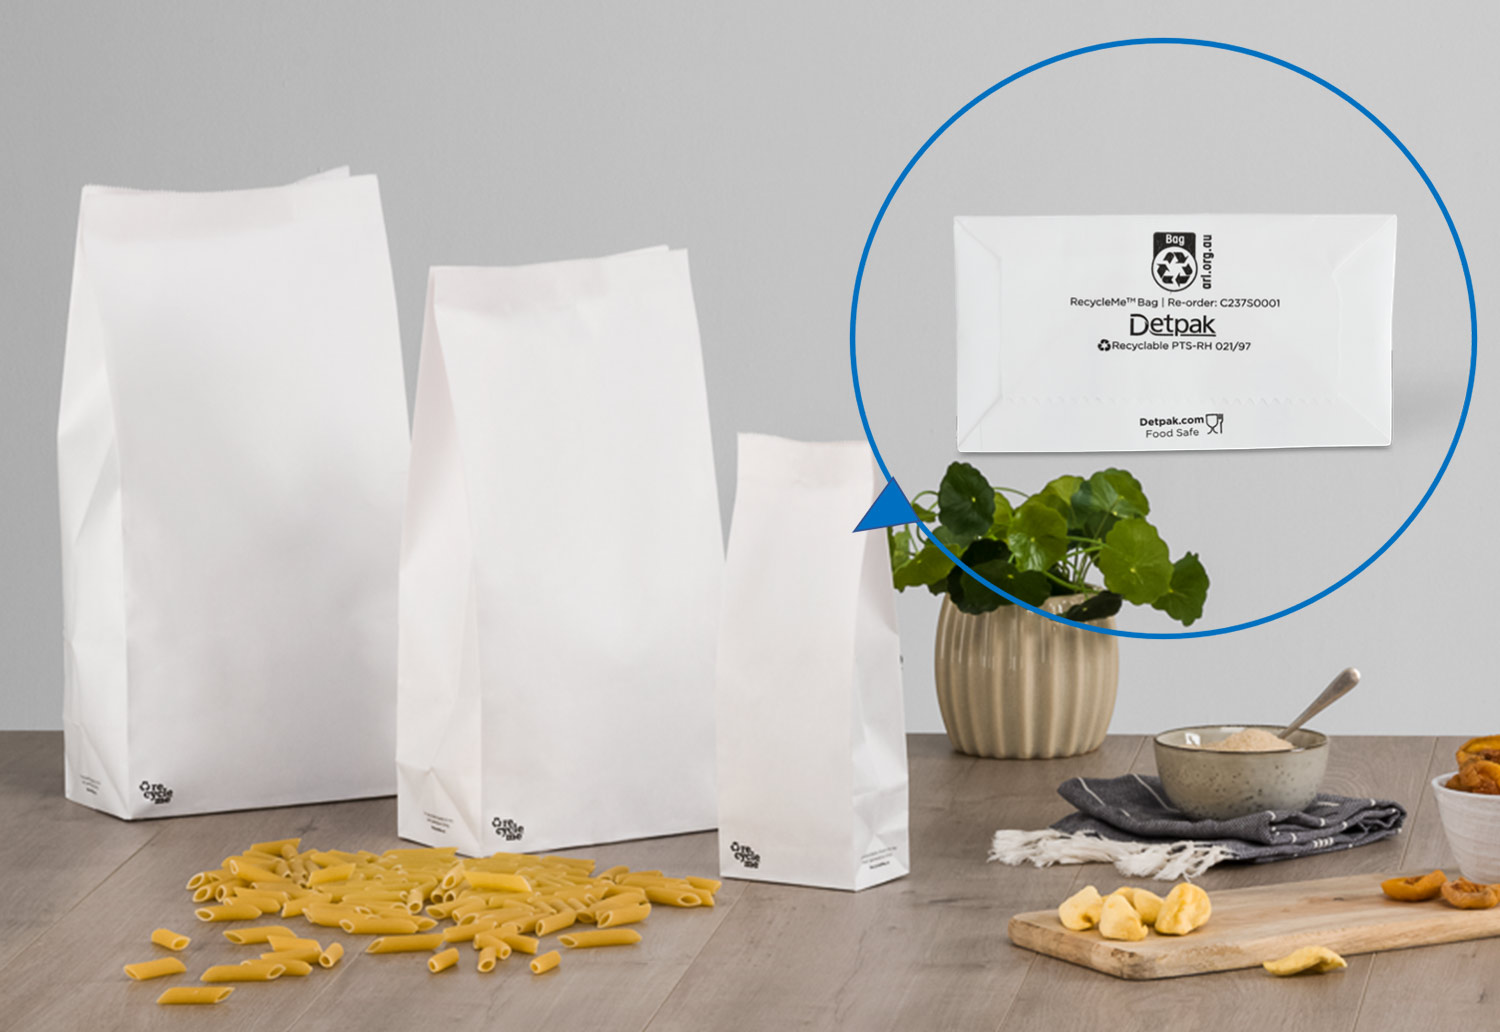 Image of RecycleMe bags filled with pasta and showing the Australasian Recycling Label